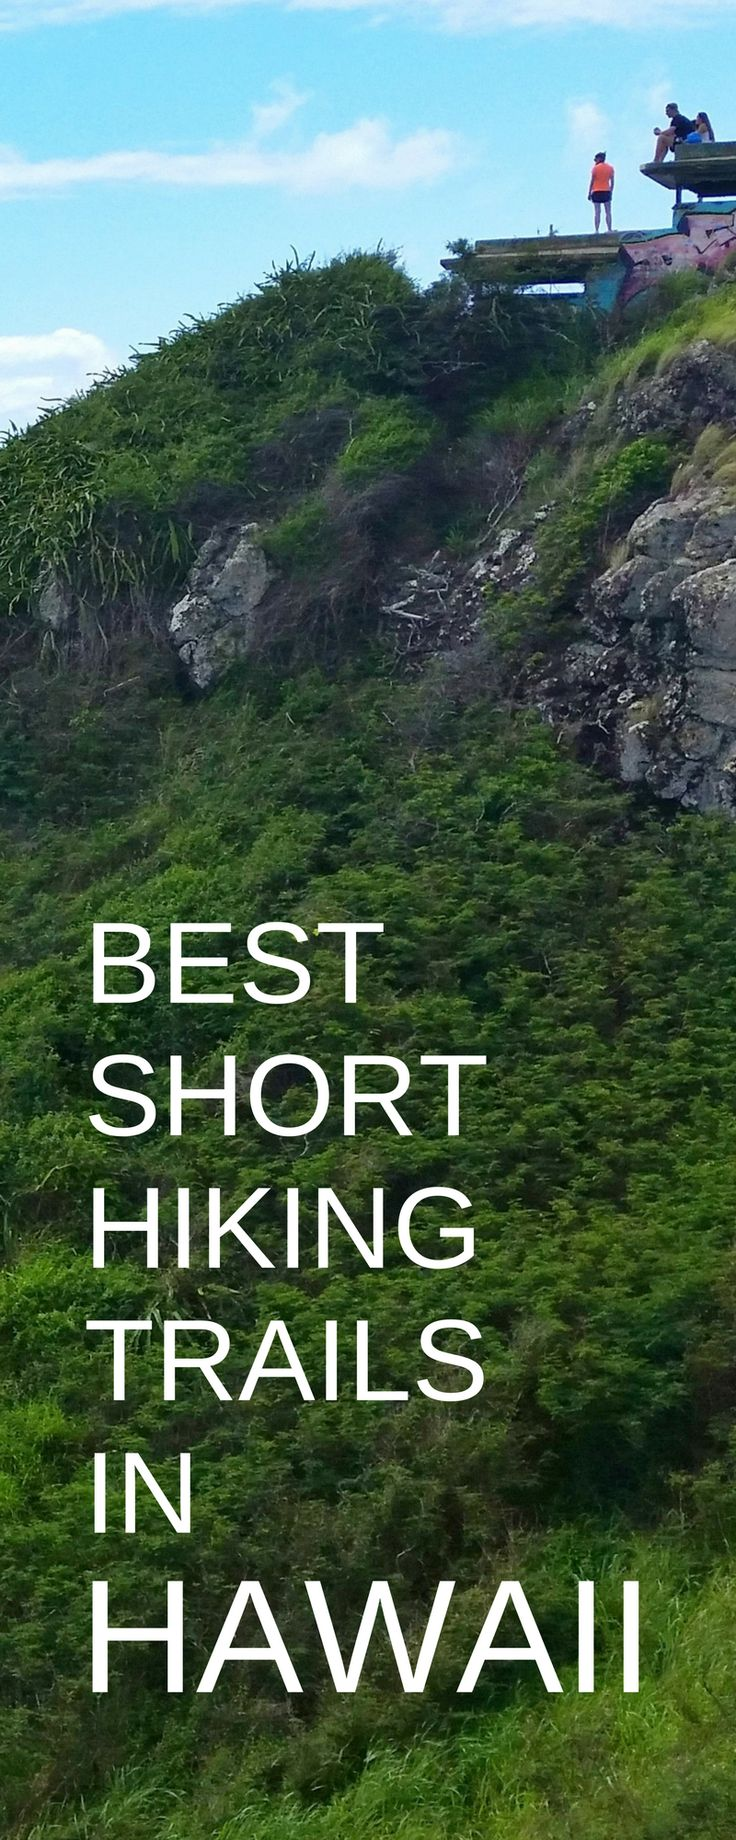 Best short hiking trails in Hawaii. Oahu hikes for vacation ideas and list of things to do on Oahu. Outdoor activities on a budget to save money on day trip adventure from Waikiki or Honolulu, near Kailua, North Shore. Free, cheap. Beaches and snorkeling nearby. Bucket list dream destinations, honeymoon. Tips for what to wear hiking and what to pack for Hawaii packing list. Oahu travel guide. #hawaii #oahu